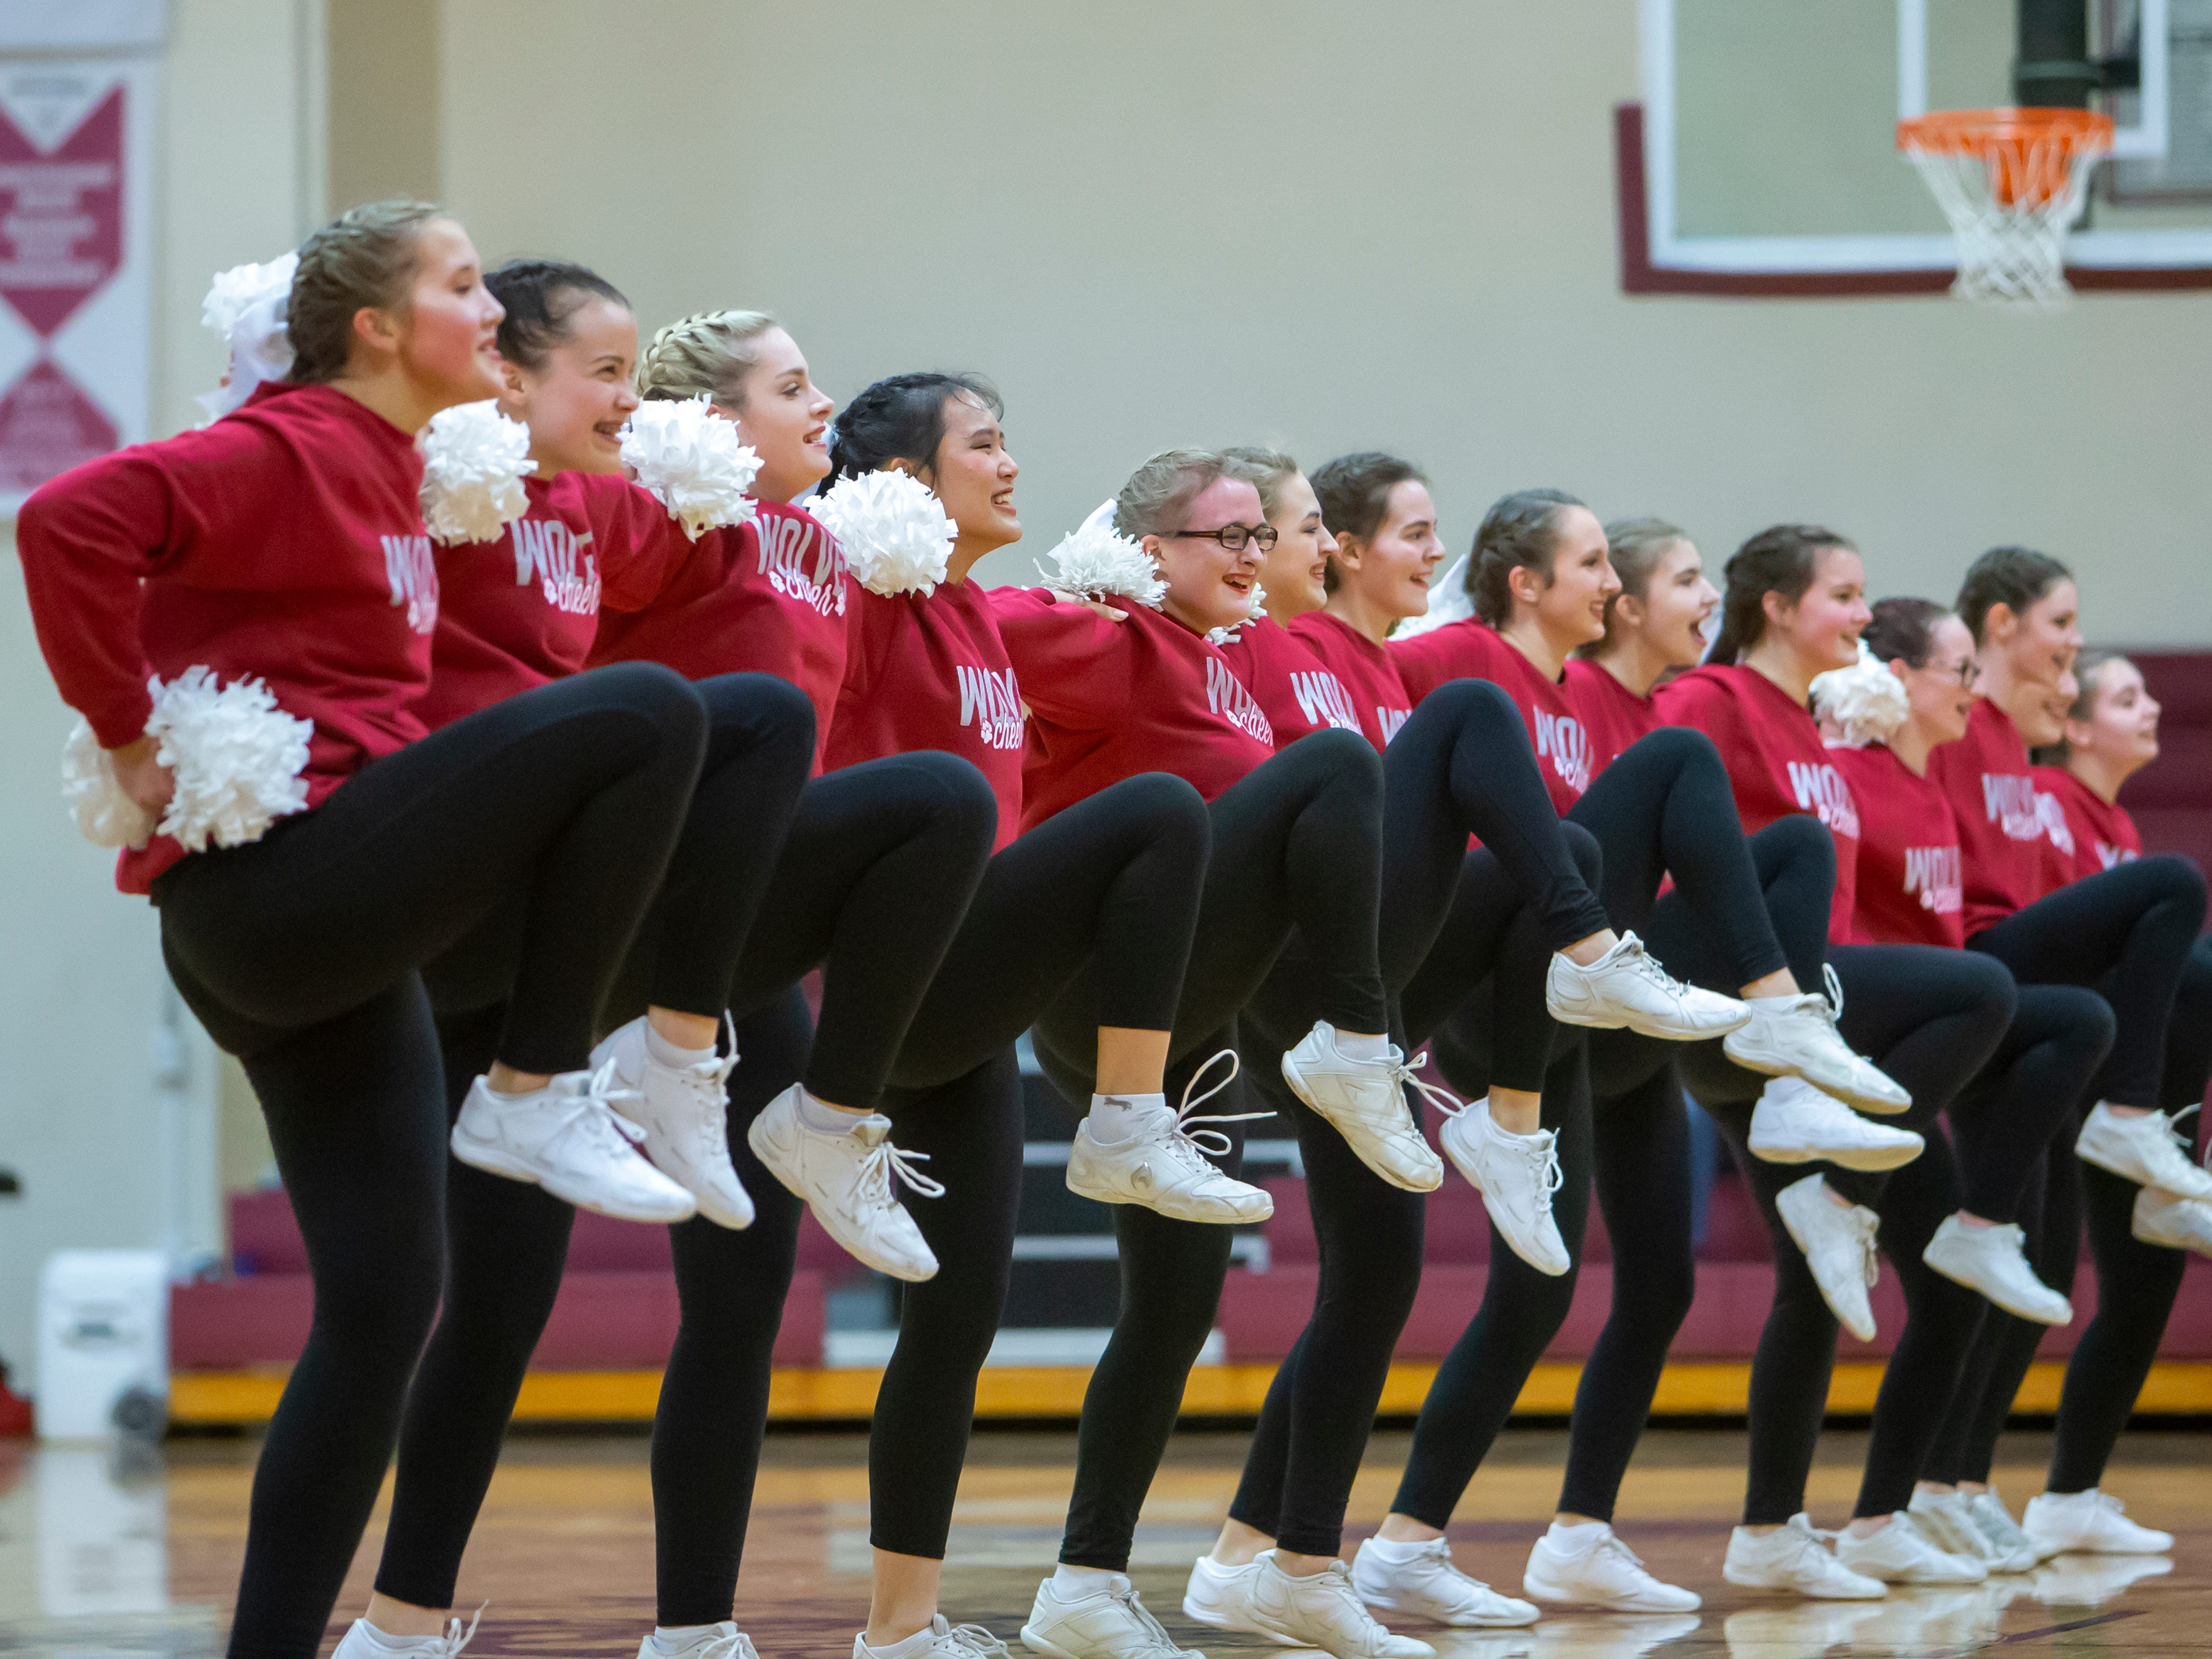 The Winneconne dance team performs for the basketball game half-time entertainment at Winneconne High School on Thursday, Dec. 20, 2018.